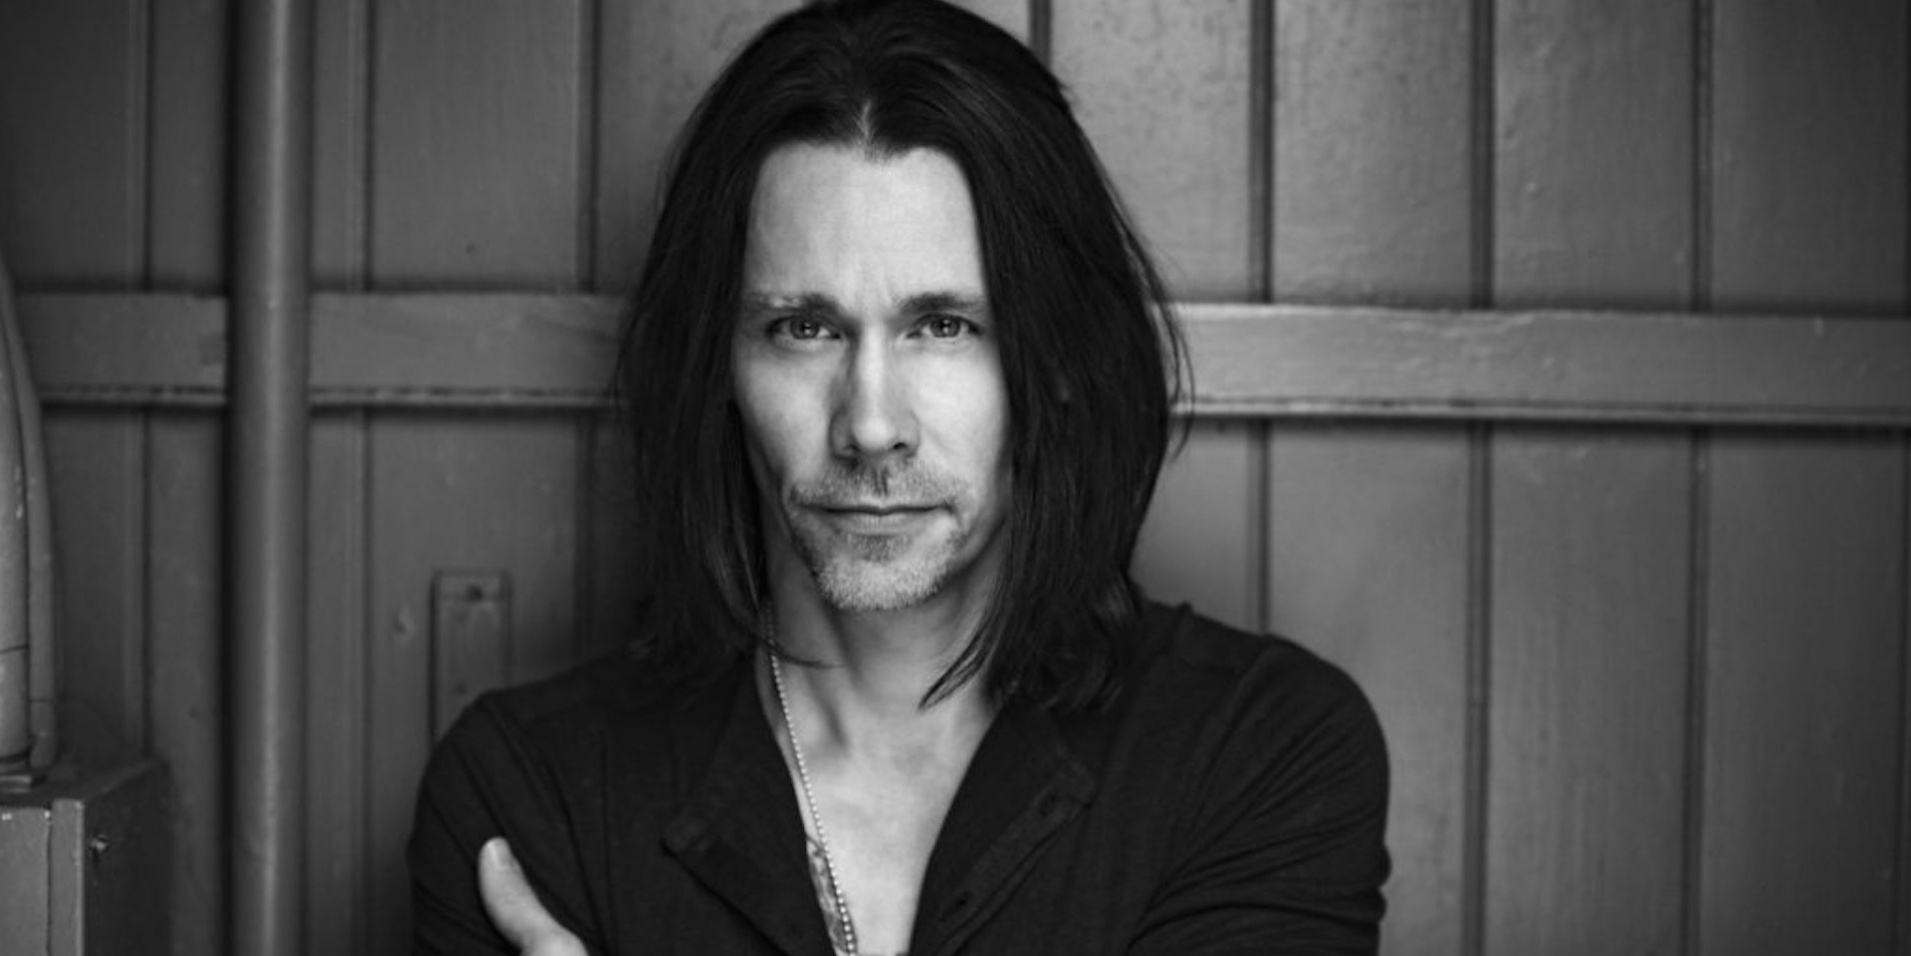 7 things you didn't know about Myles Kennedy